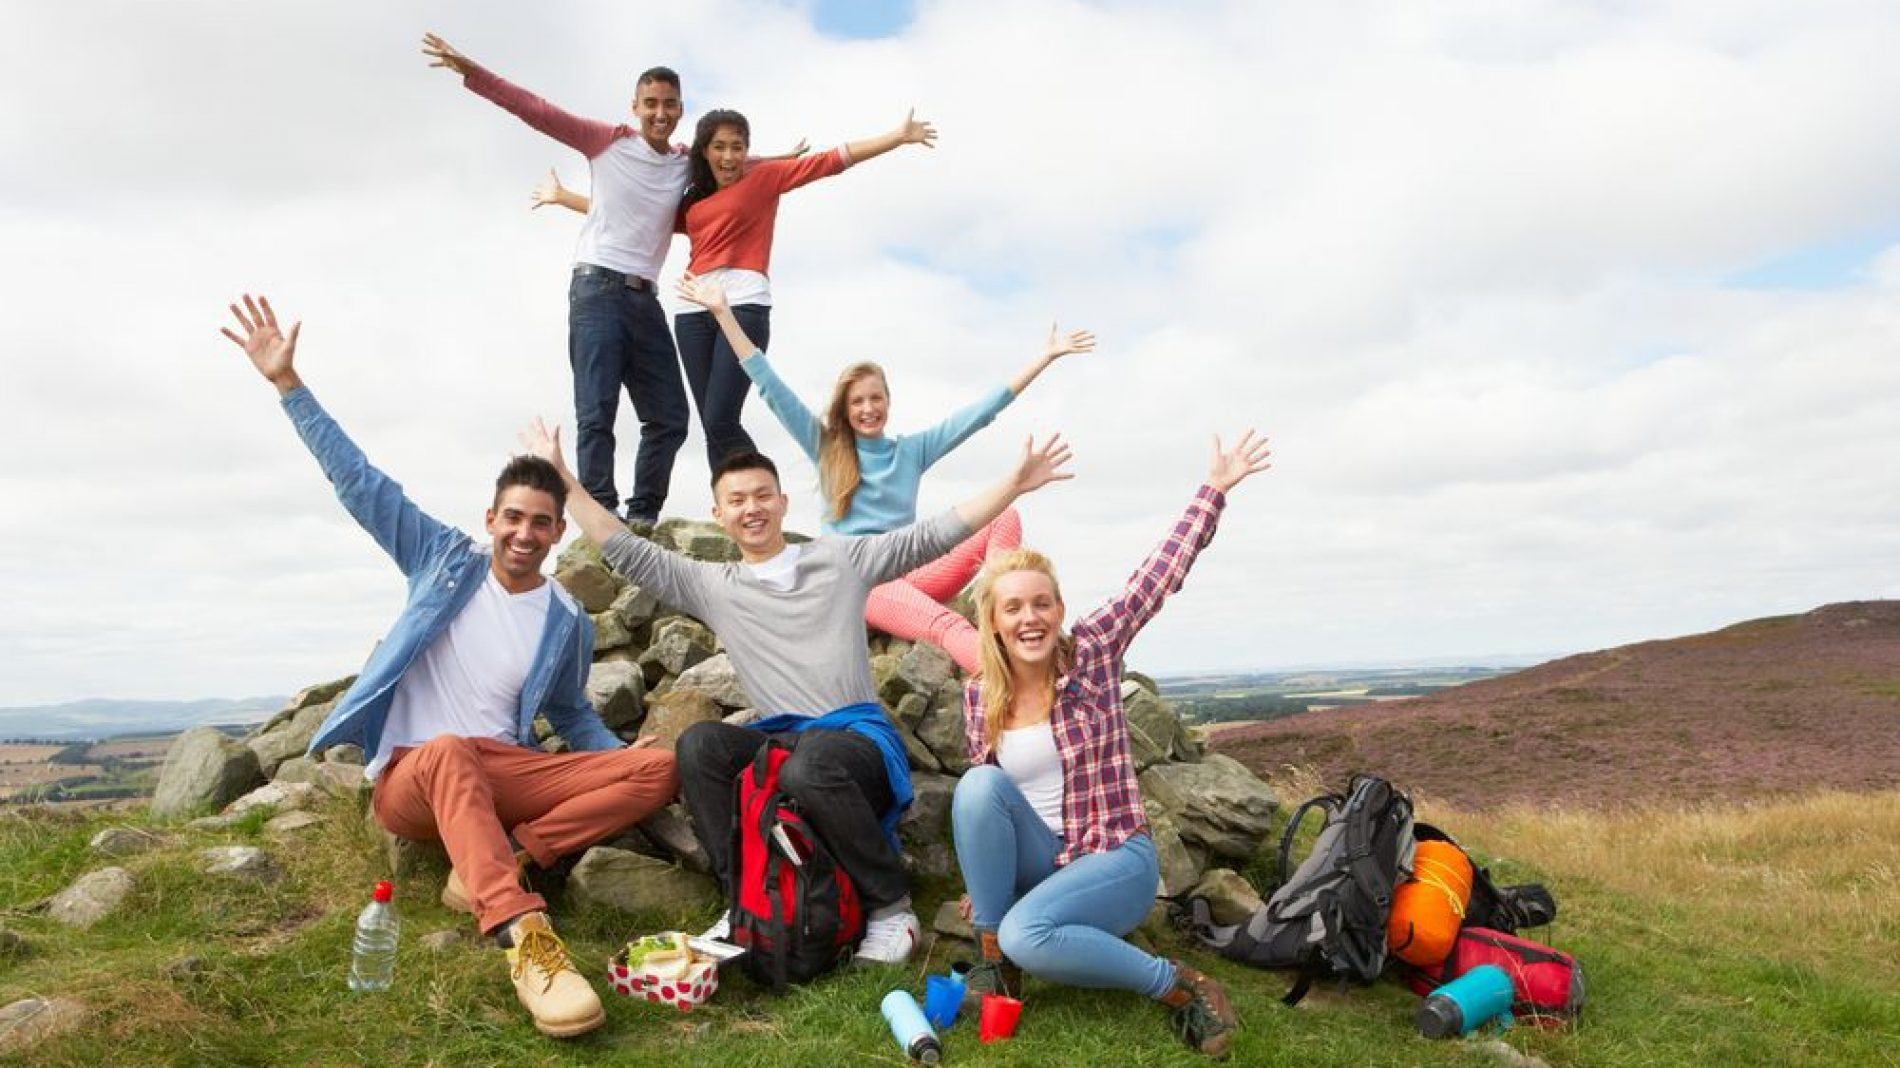 Group of young people on a trip